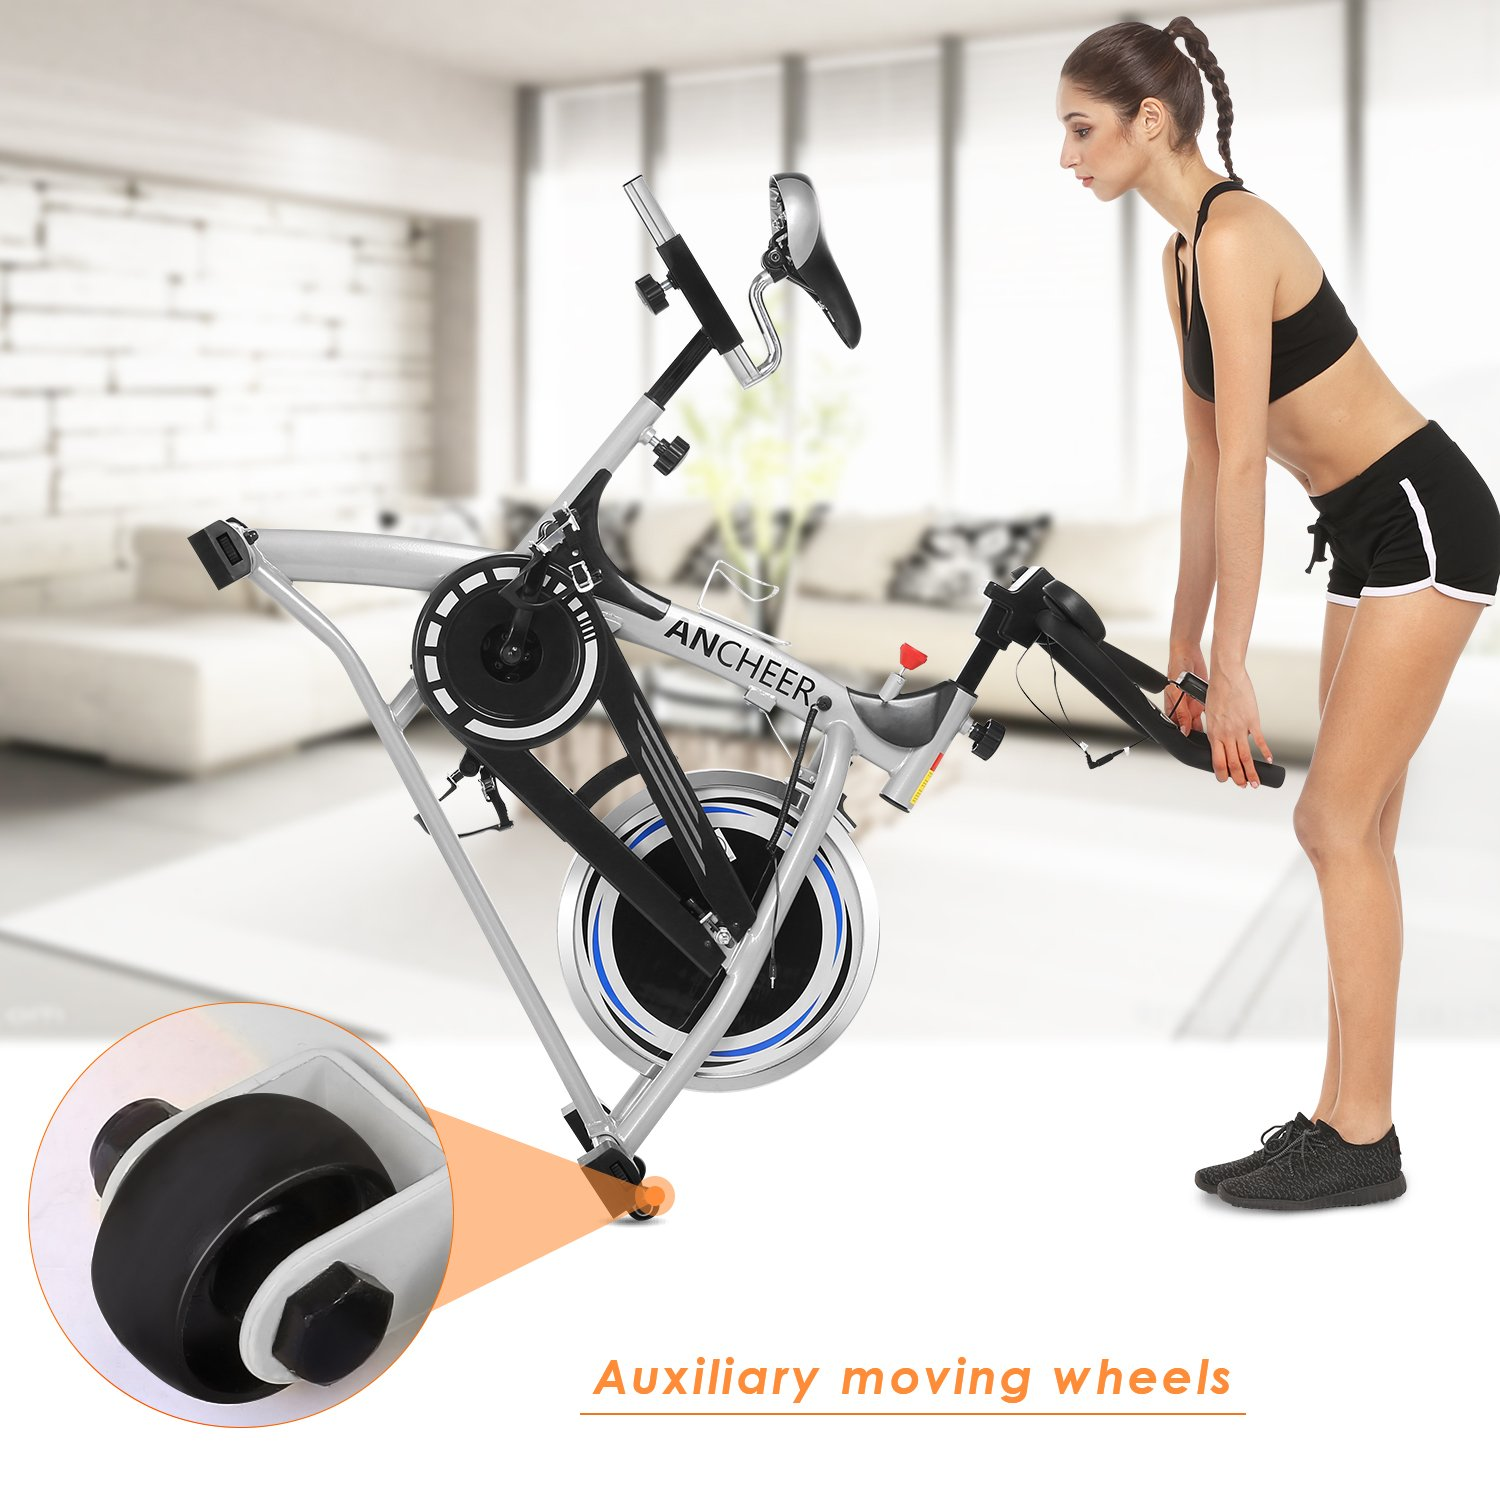 ANCHEER Stationary Bike, 40 LBS Flywheel Belt Drive Indoor Cycling Exercise Bike with Pulse, Elbow Tray (Model: ANCHEER-A5001) (Sliver) by ANCHEER (Image #7)